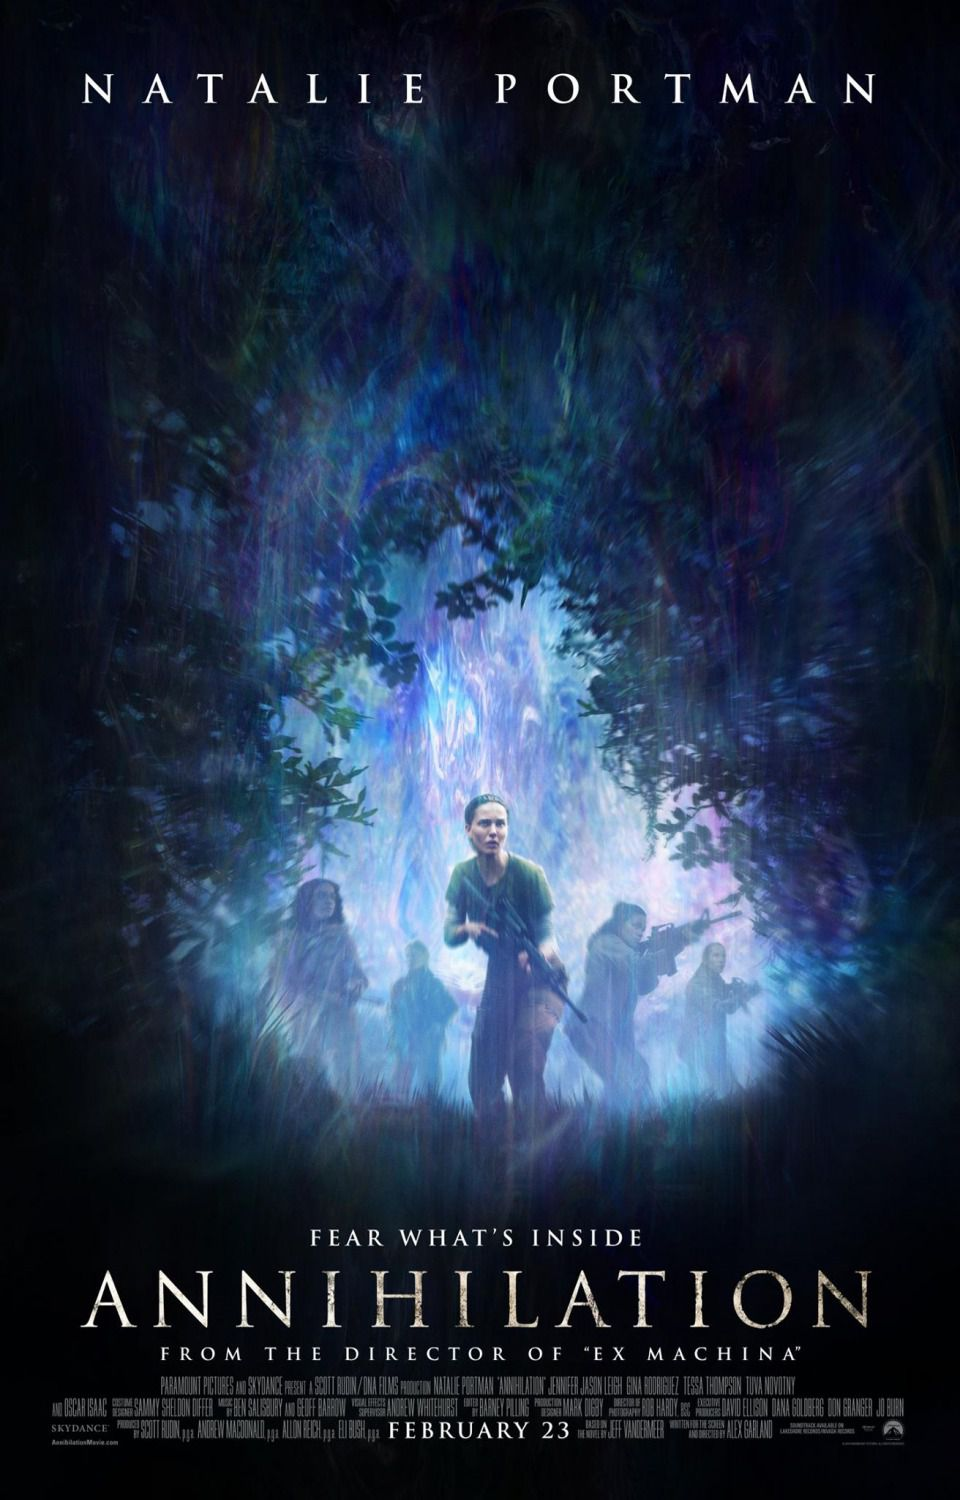 Annihilation - Fear whats inside - Natalie Portman